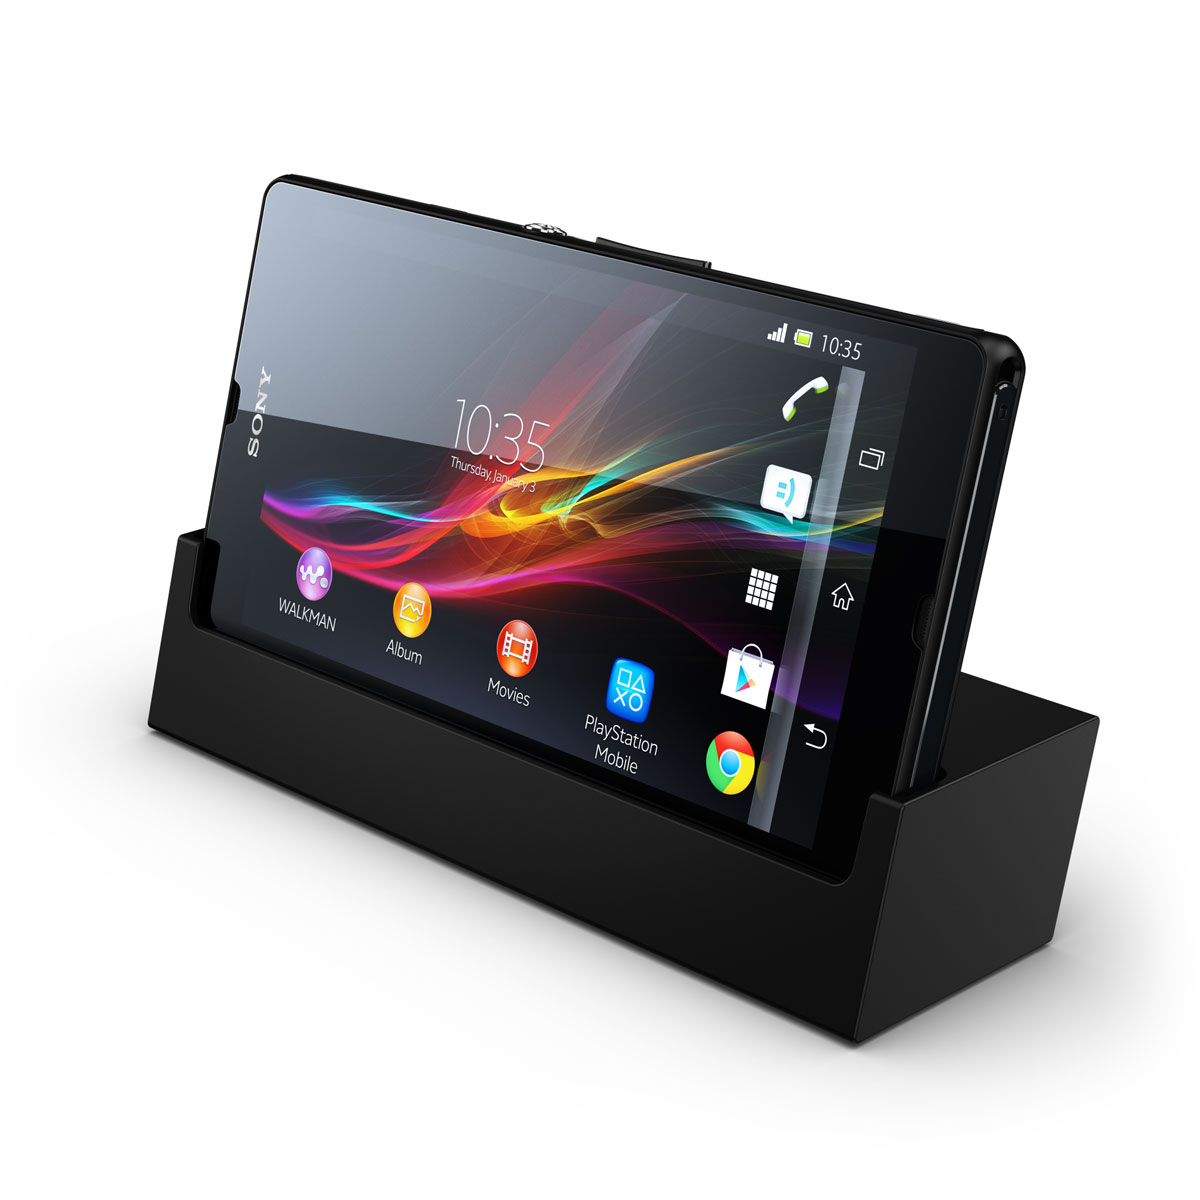 sony xperia z noir dock dk26 sony ericsson liveview micro display achat vente mobile. Black Bedroom Furniture Sets. Home Design Ideas